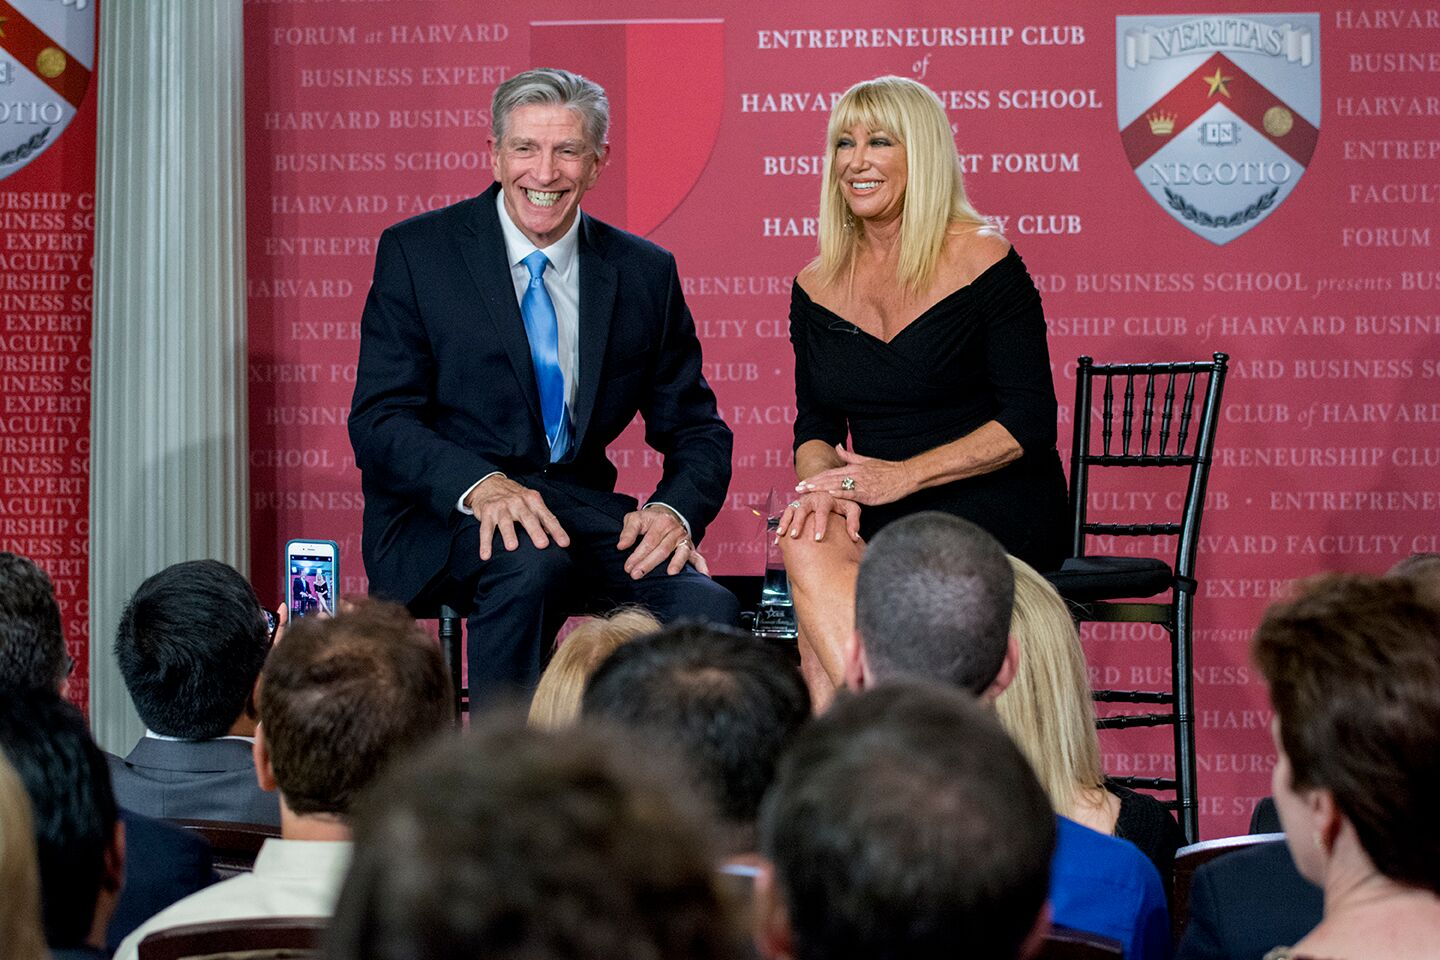 Jim Heafner and Suzanne Somers